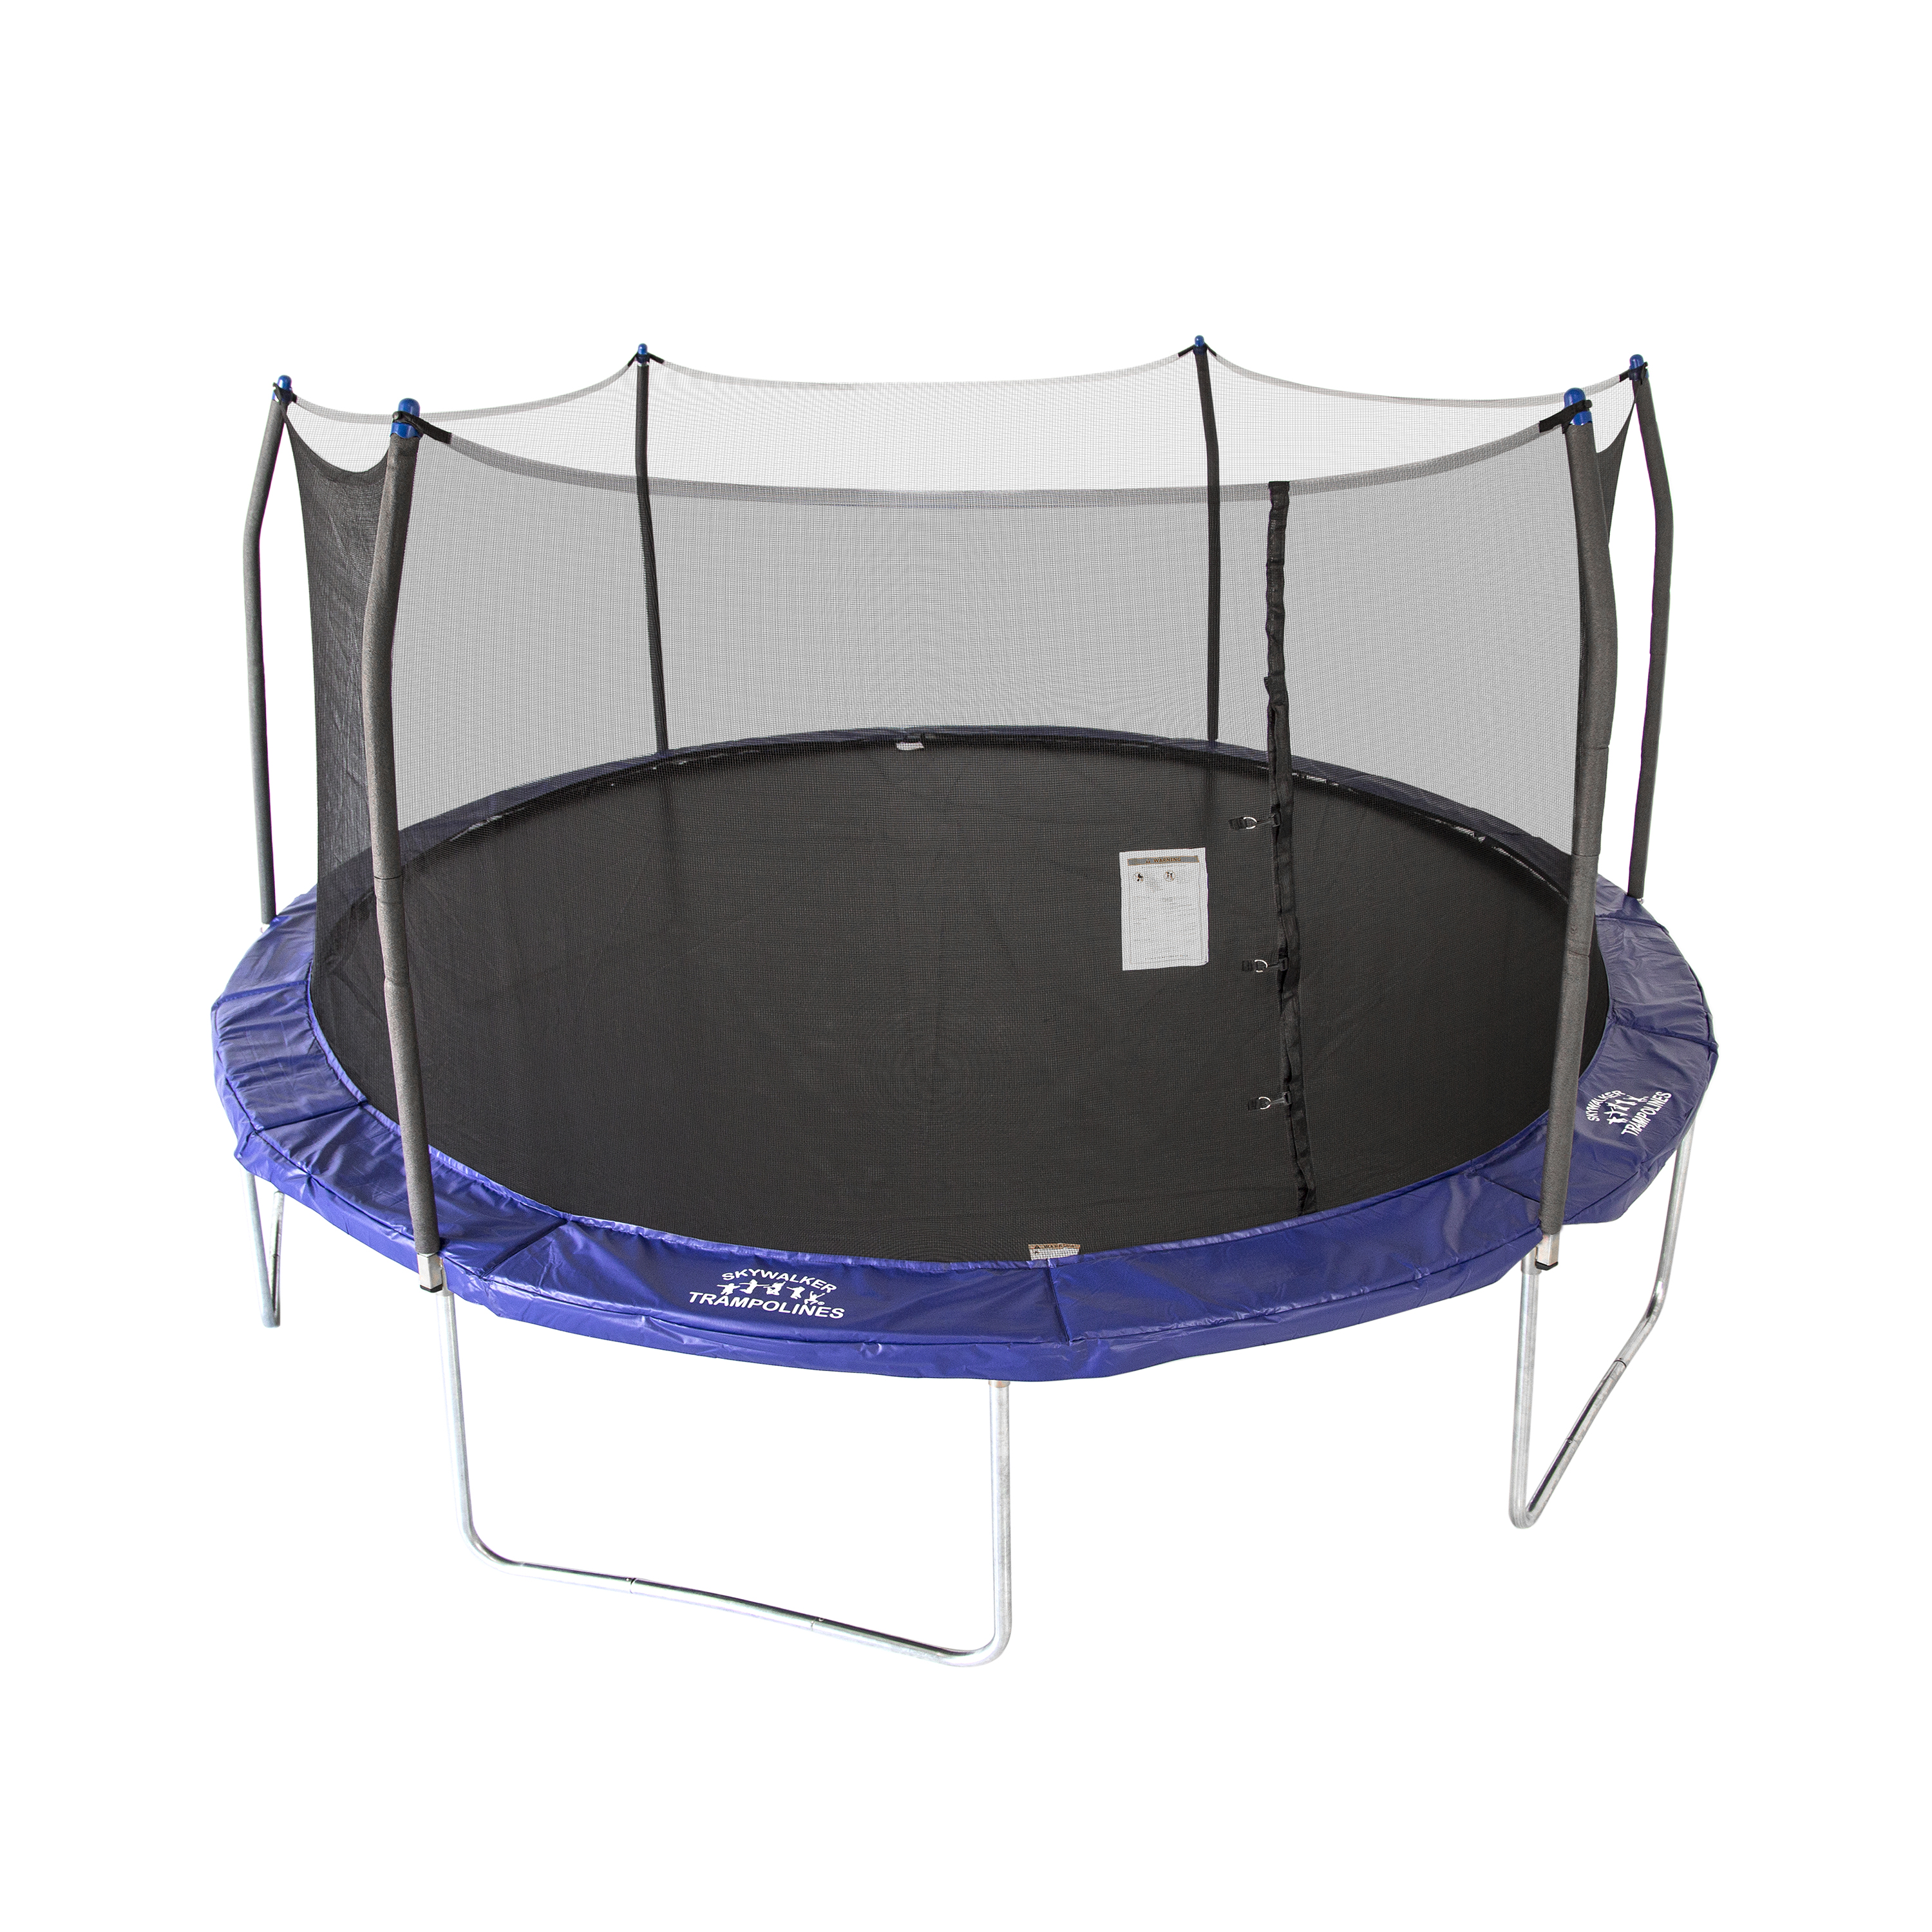 Skywalker Trampolines Oval 16 Foot Trampoline With Safety